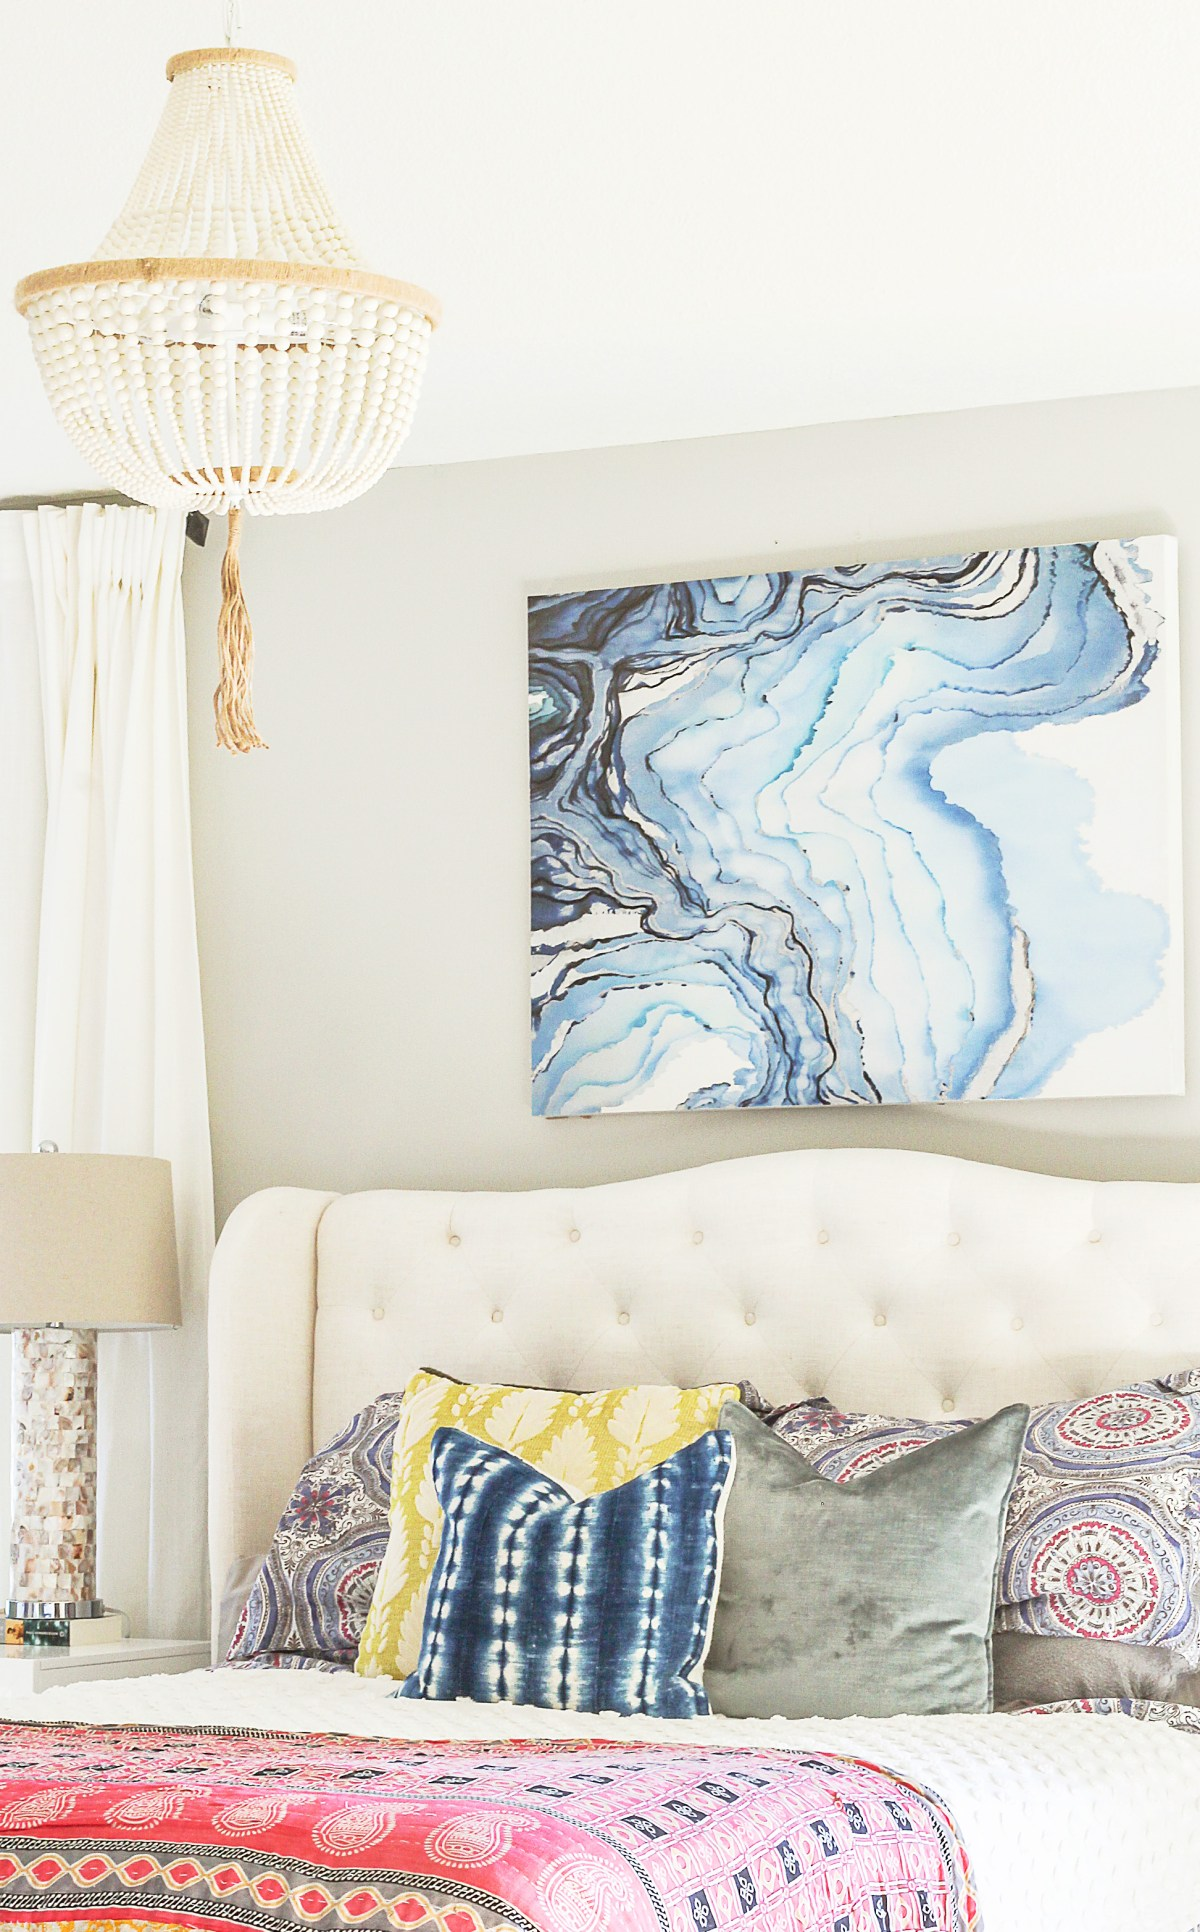 Where to Buy Beaded Chandeliers on the Cheap Boho Lighting